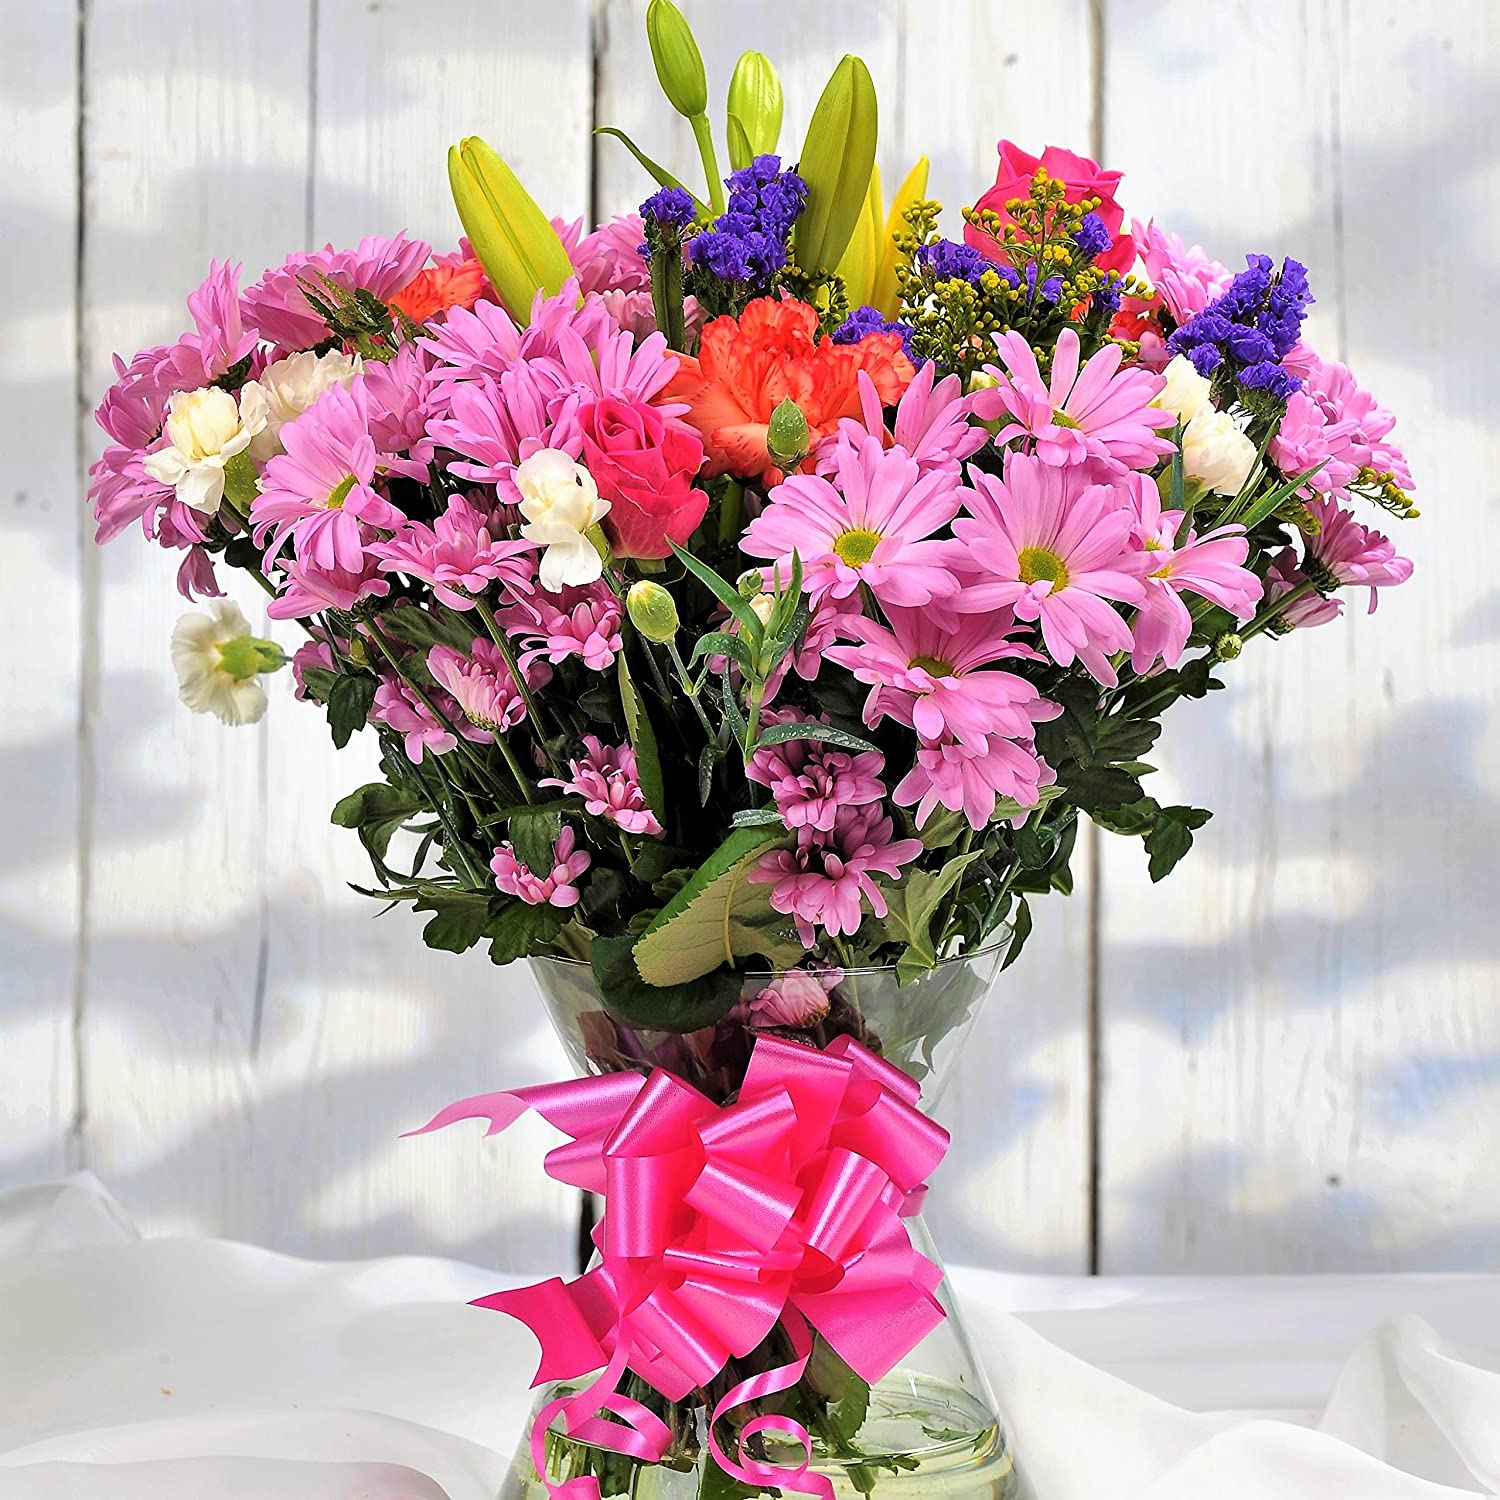 Best value fresh flowers delivered stunning mixed flower bouquet best value fresh flowers delivered stunning mixed flower bouquet free next day delivery in a 1hr timeslot 7 days a week beautiful birthday present or izmirmasajfo